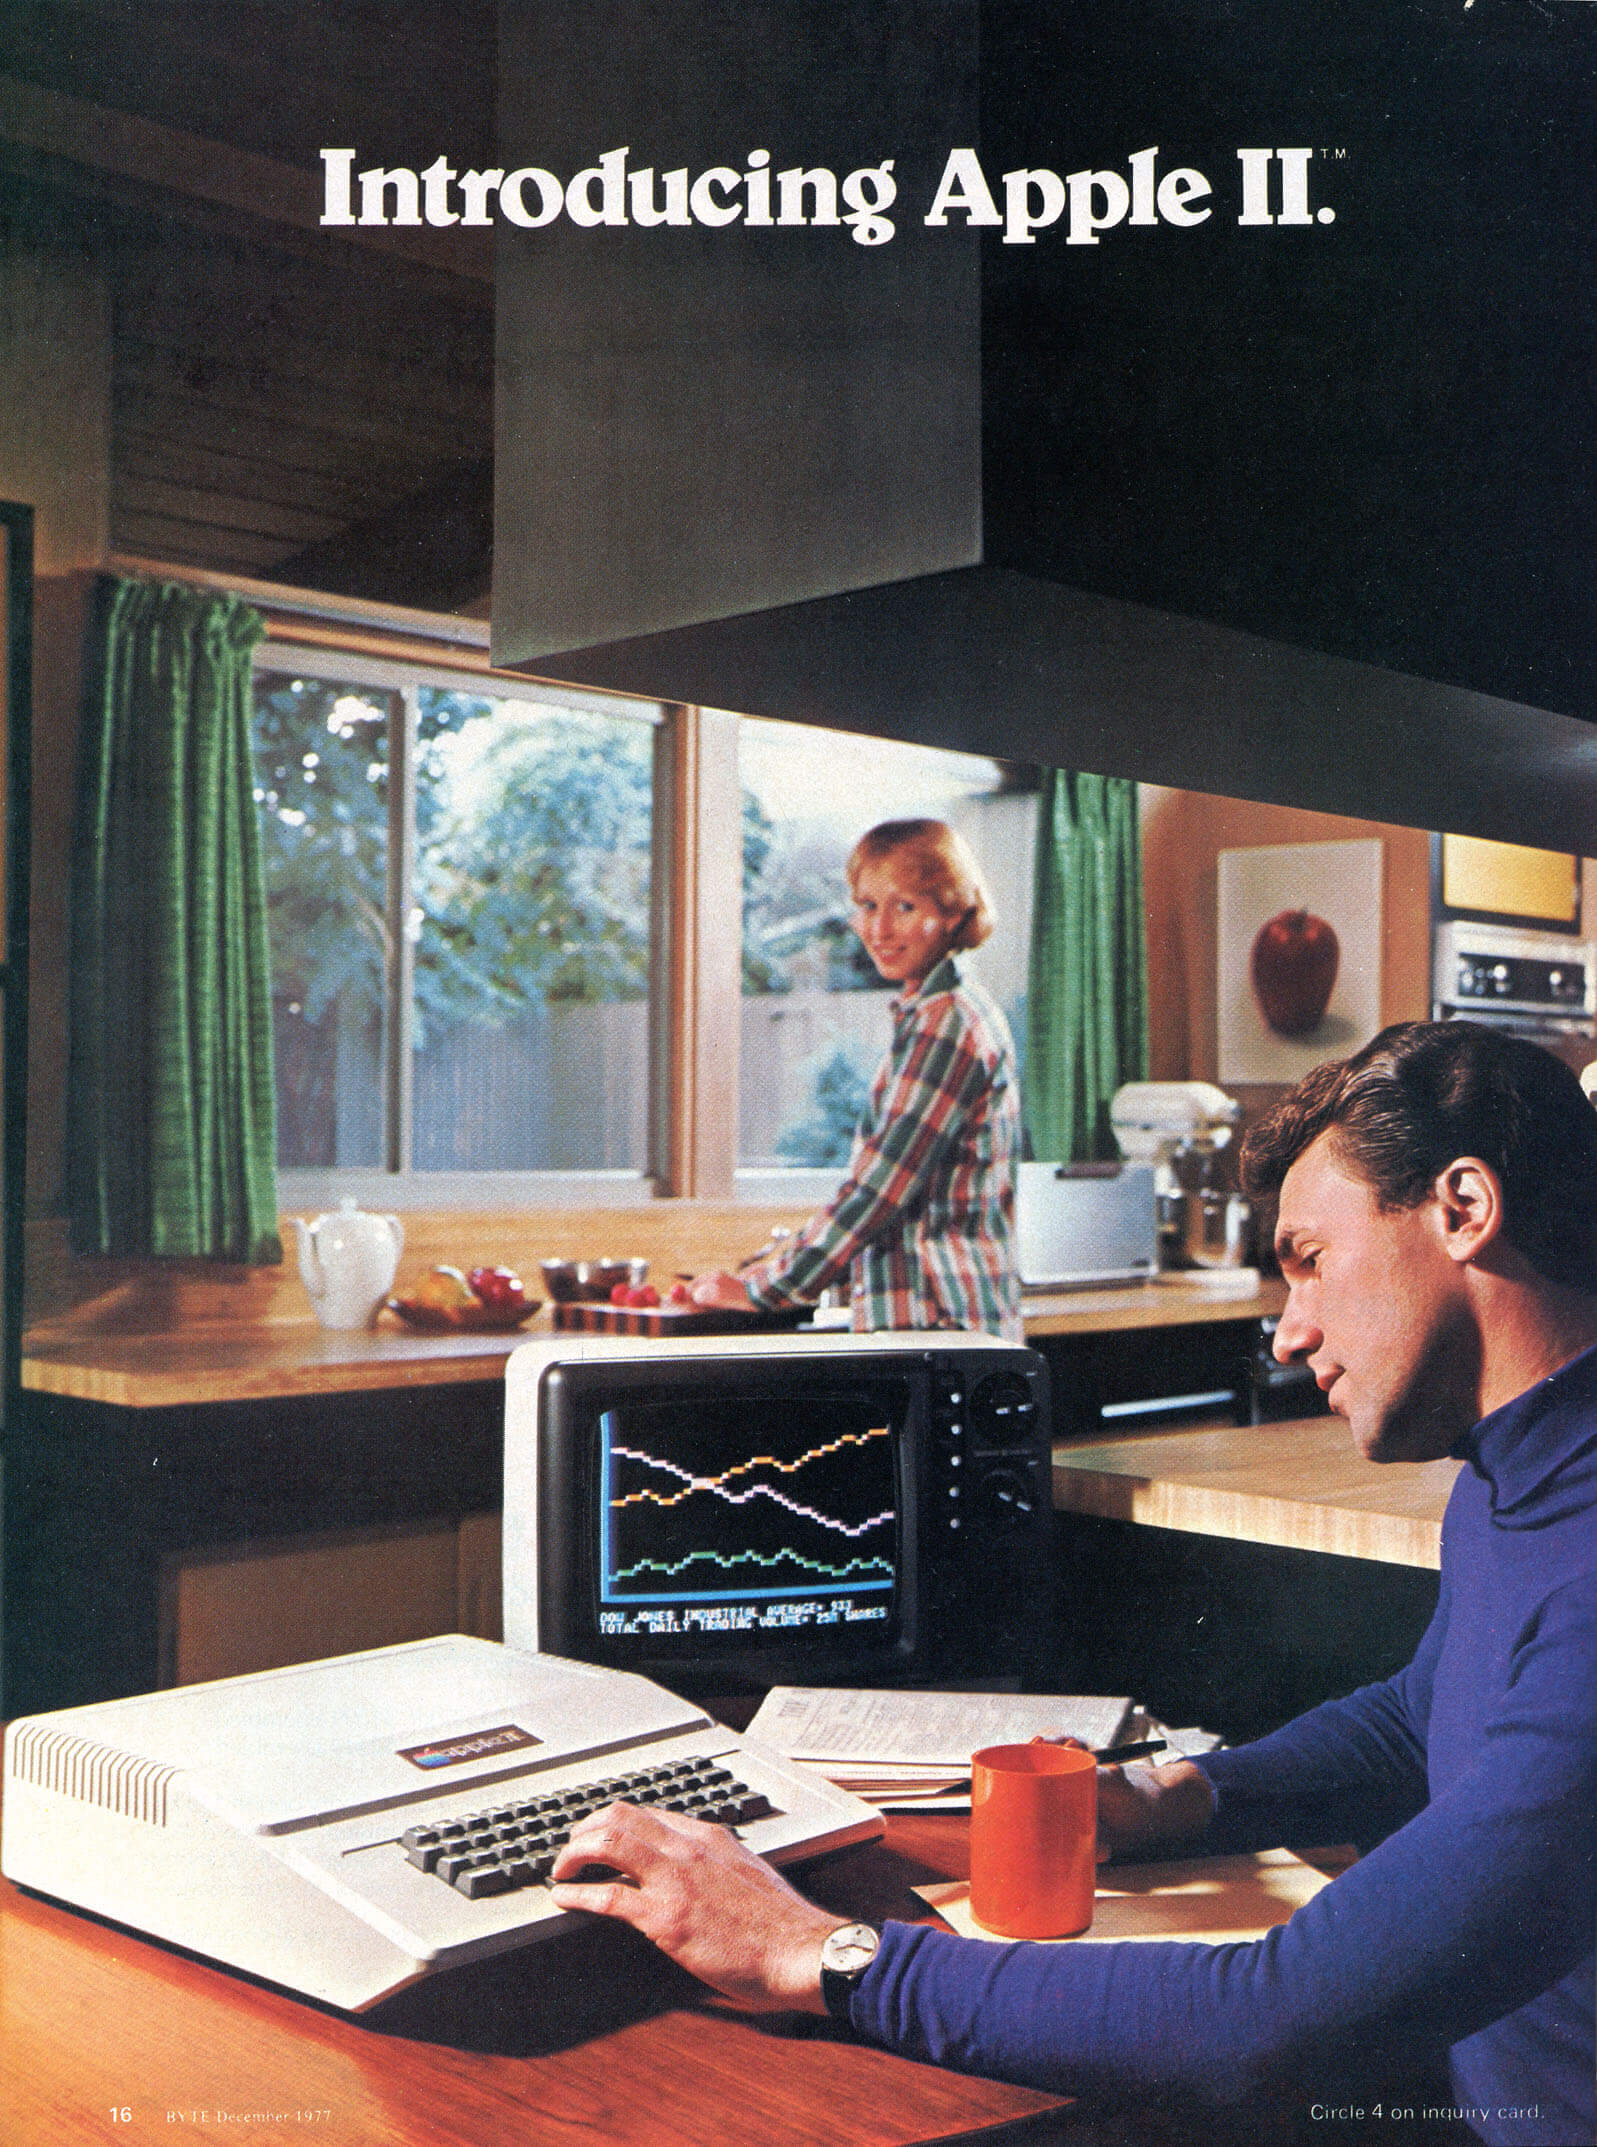 An Apple II advertisement